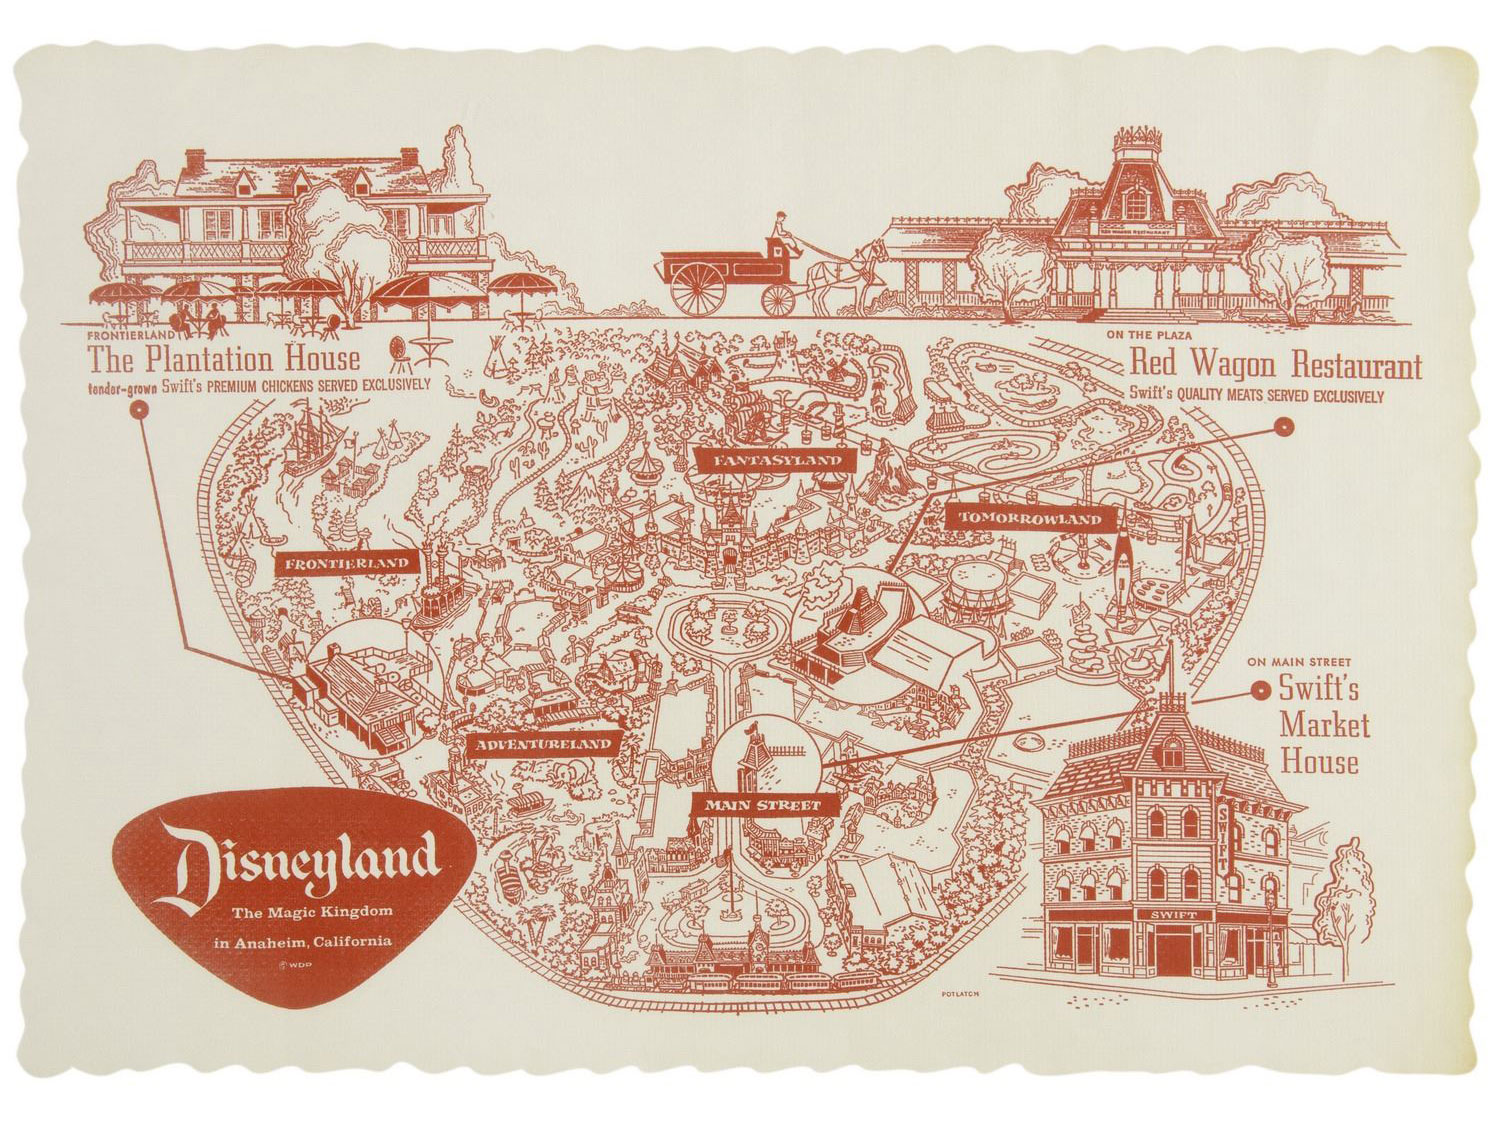 swifts-restaurant-placemat-remembering-disney-auction-FT-BLOG1217.jpg